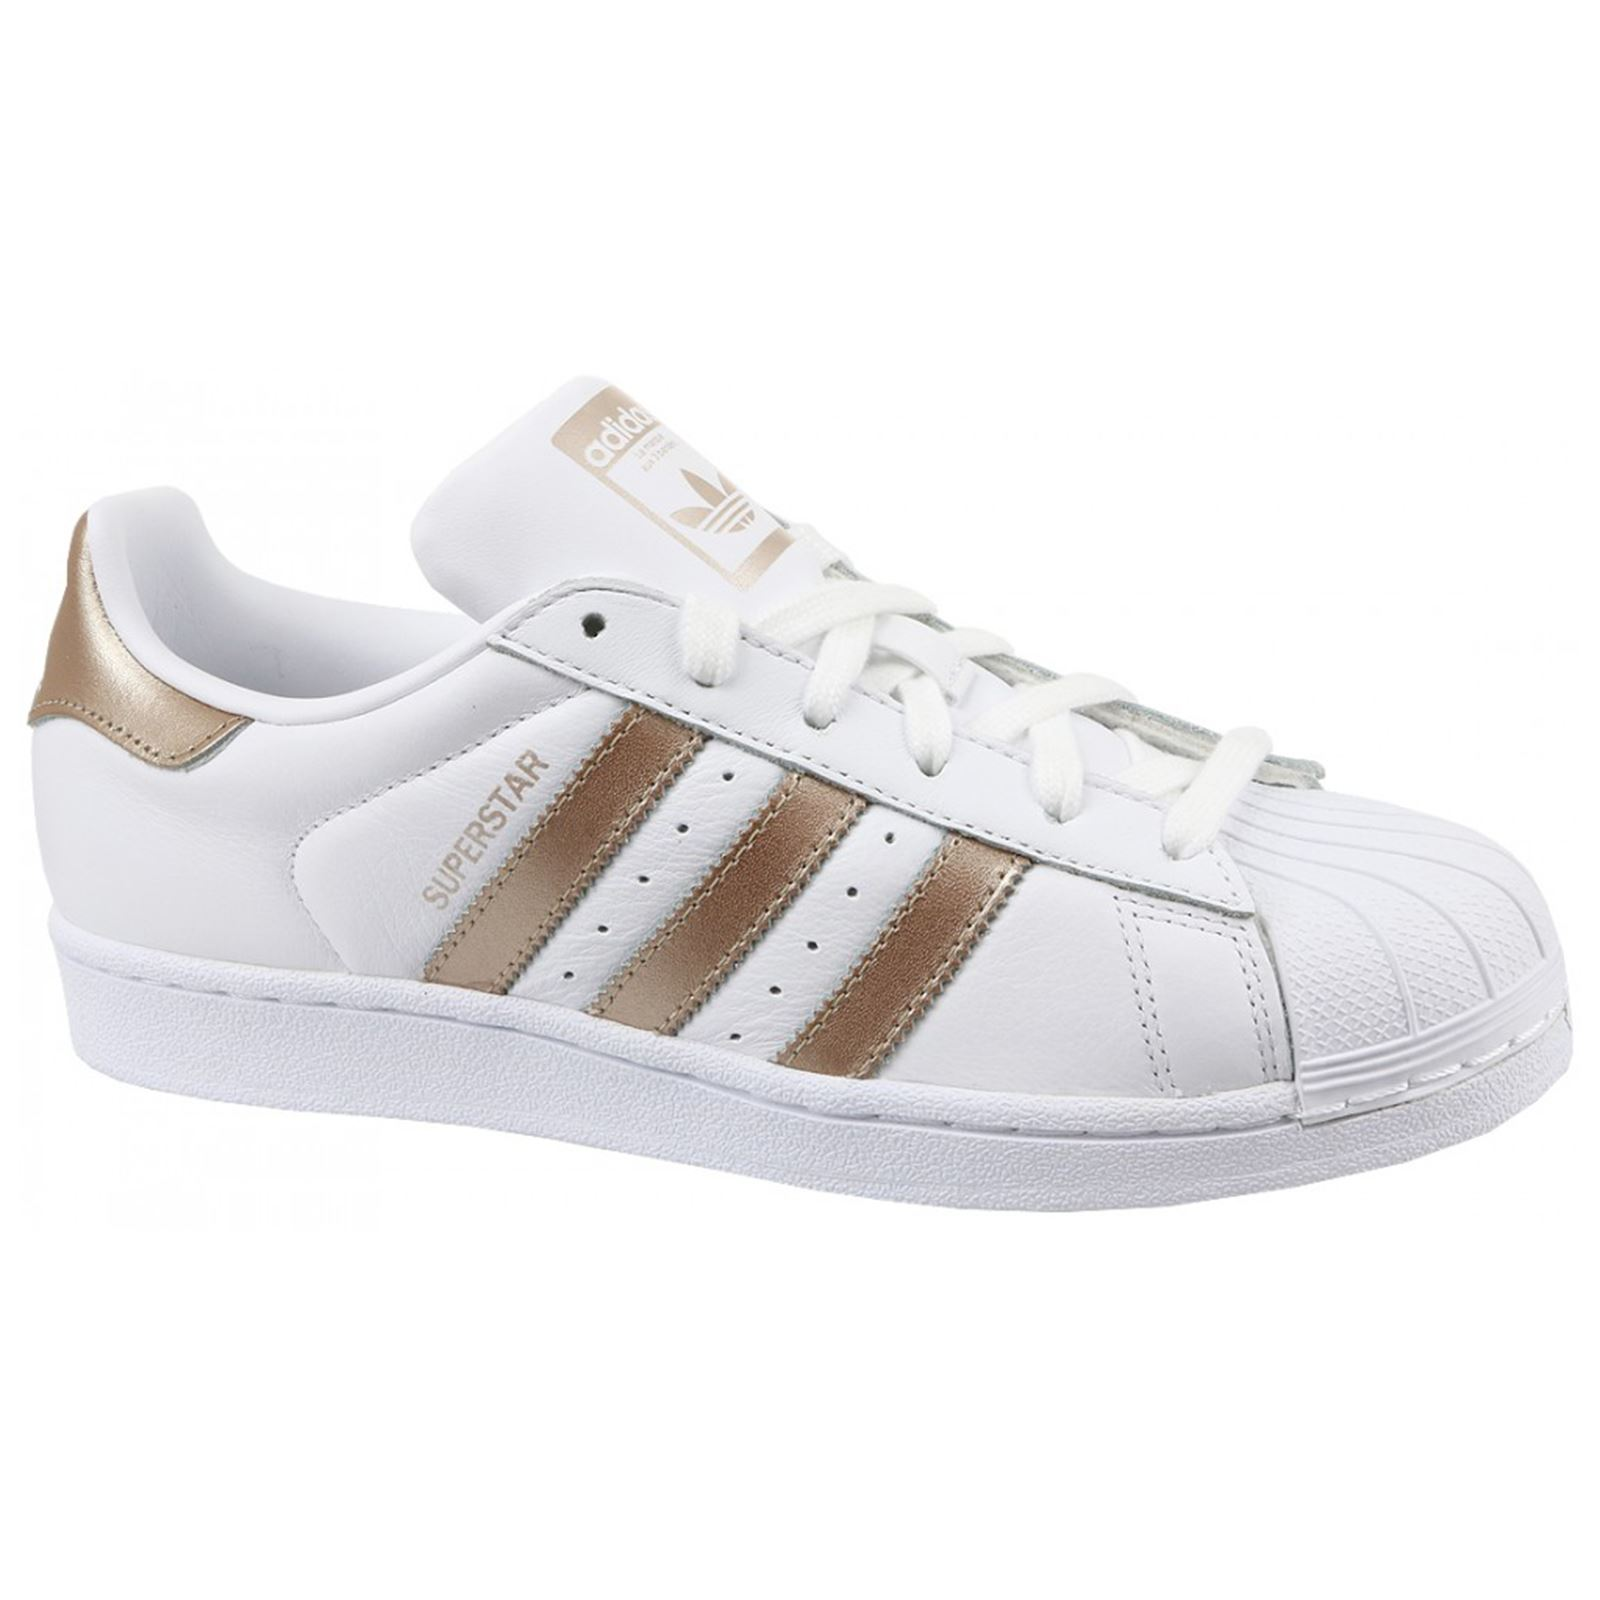 Adidas Superstar Footwear White Cyber Metallic Womens Leather Low top Trainers